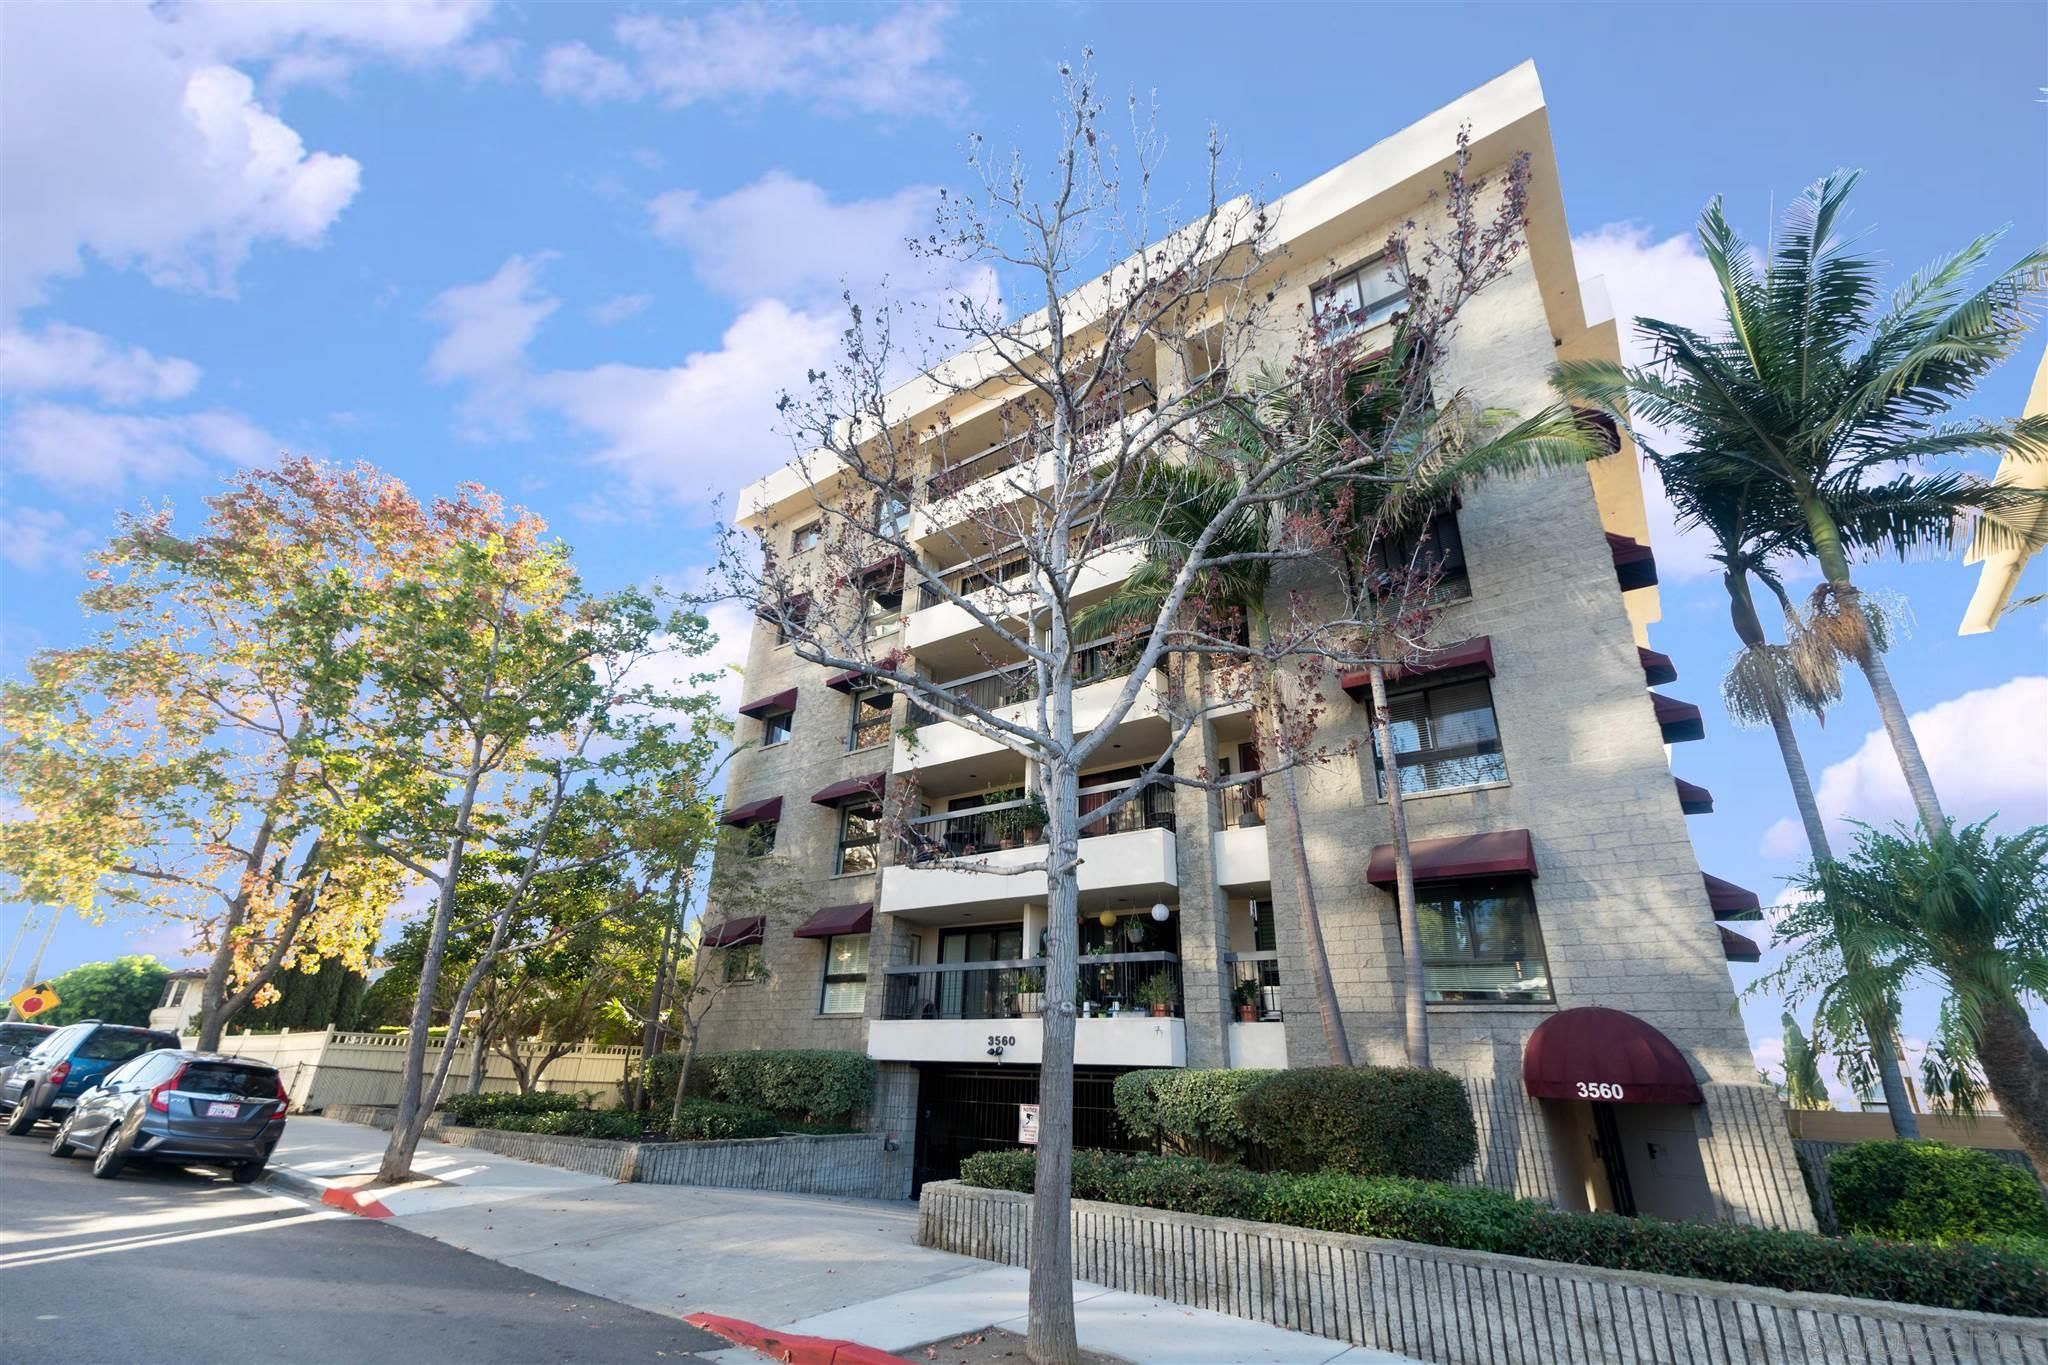 Main Photo: Condo for sale : 2 bedrooms : 3560 1St Ave #1 in San Diego